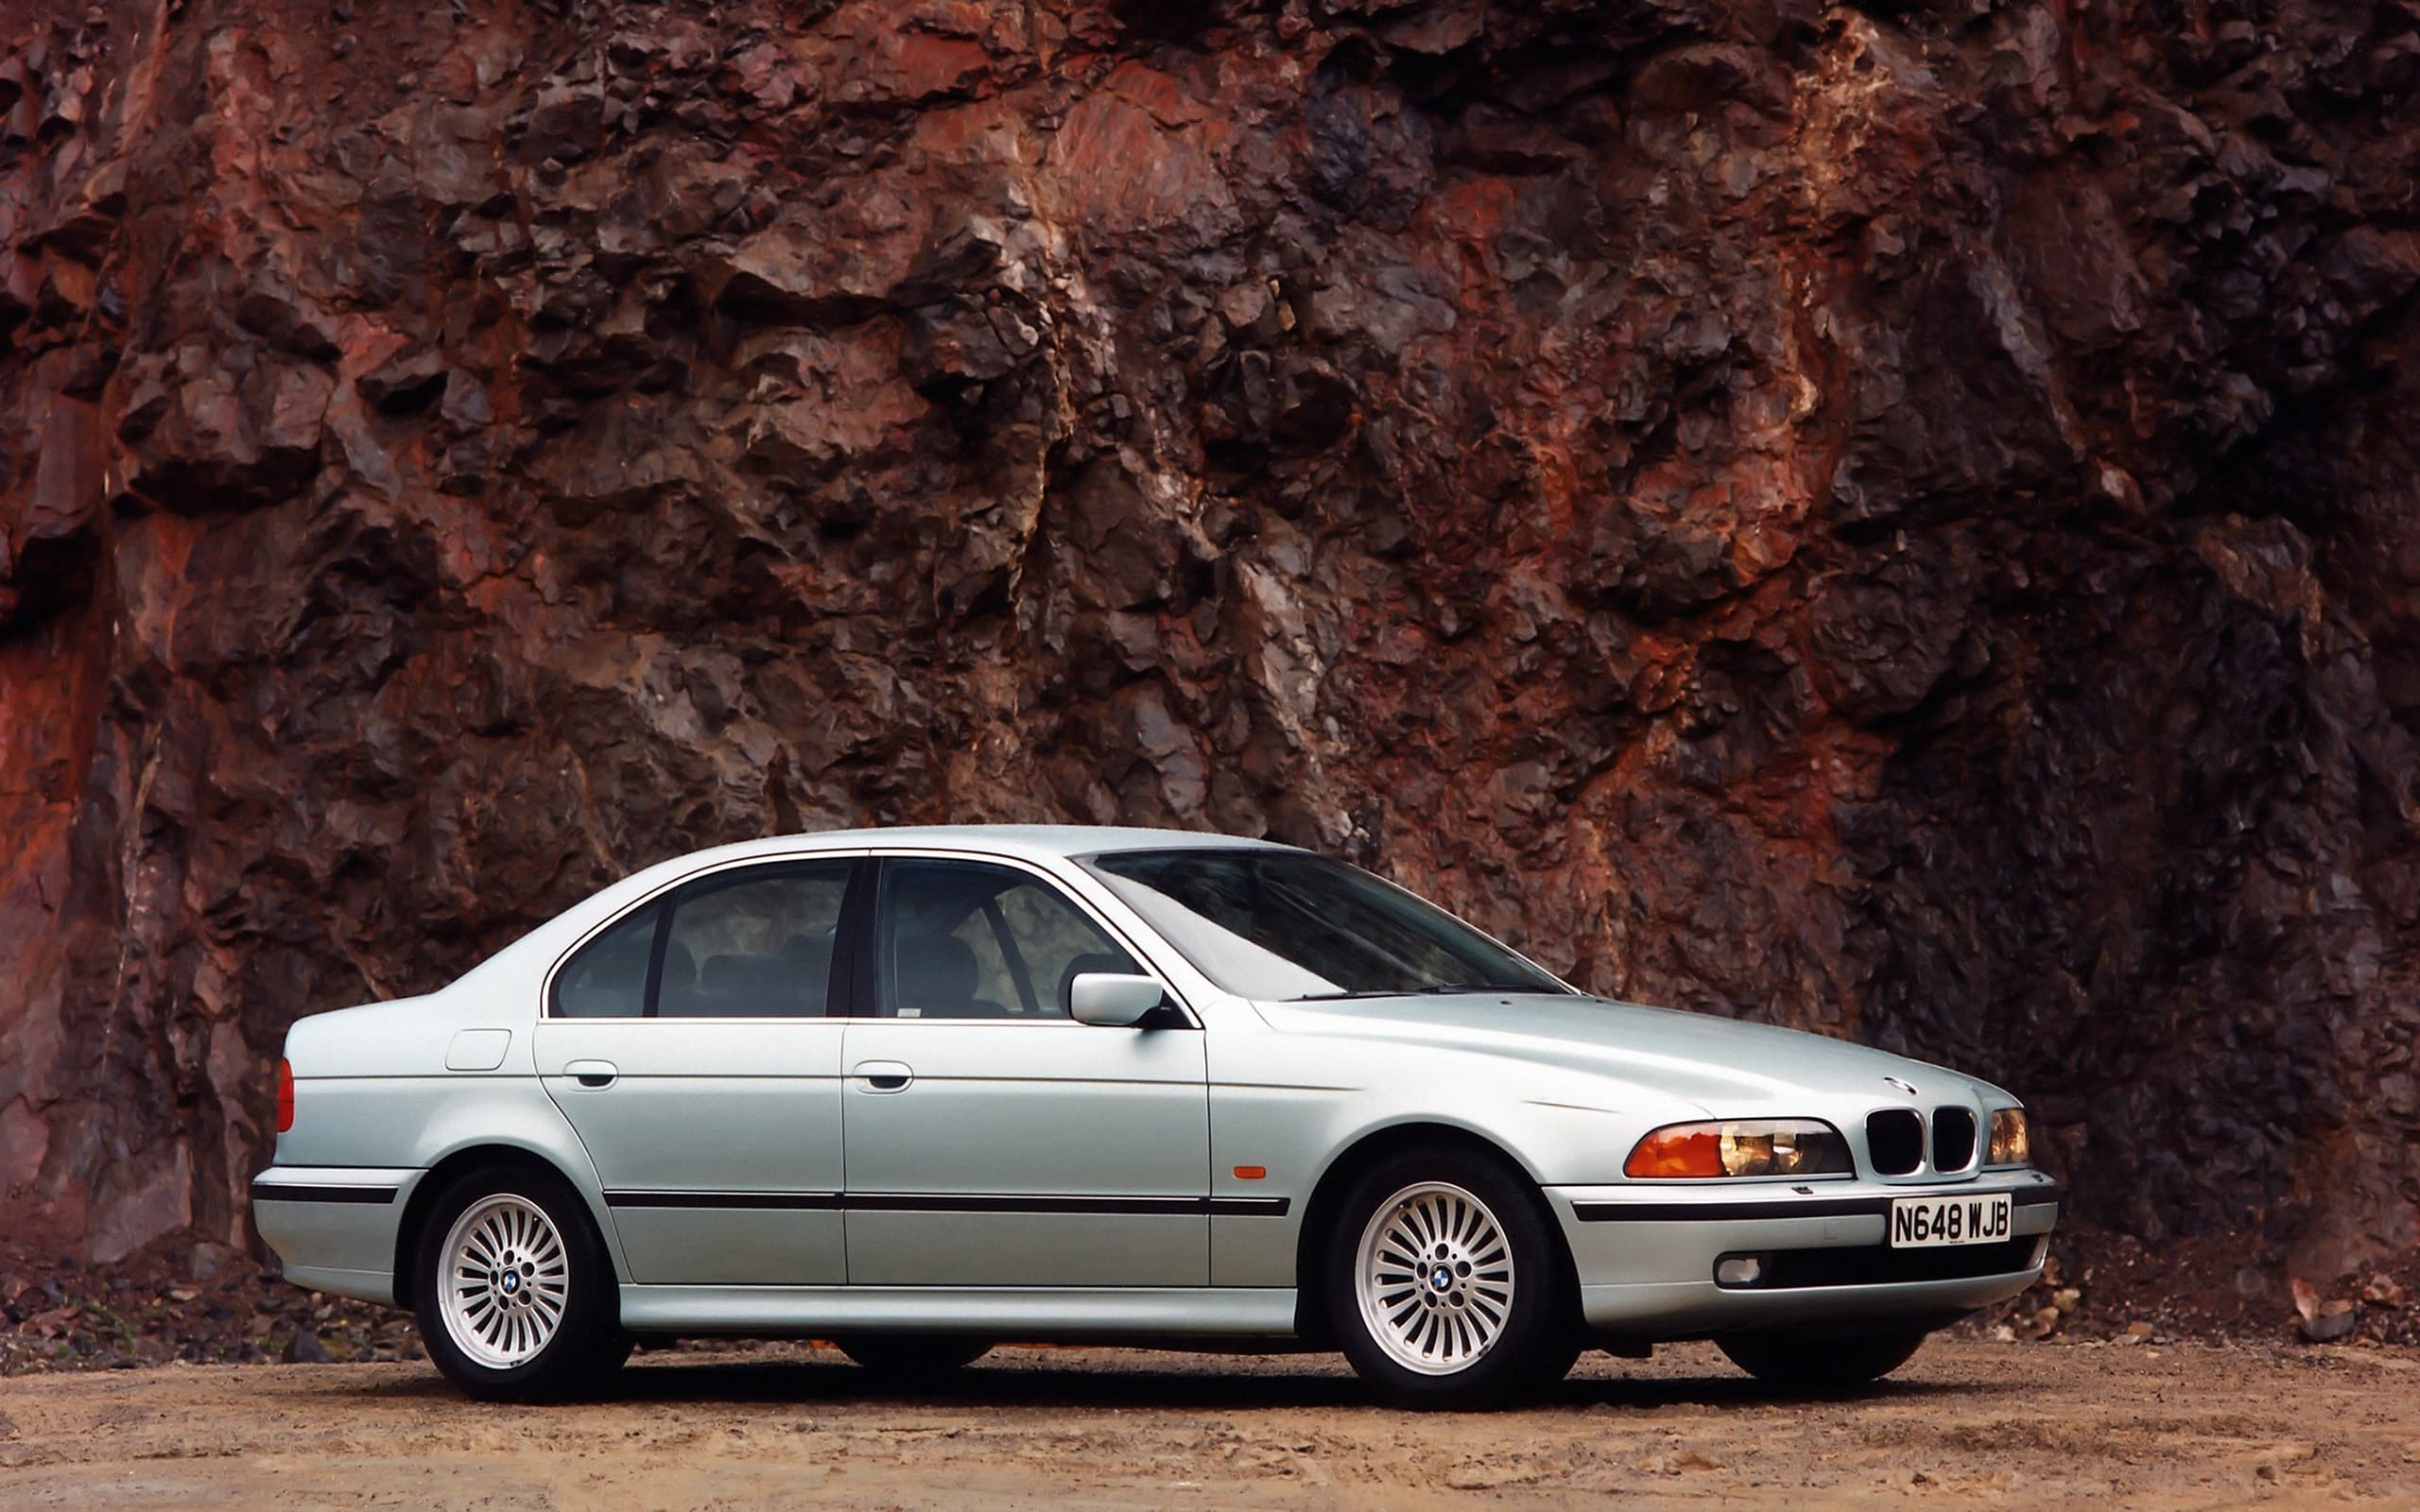 HD BMW e39 540i 1996 wallpaper